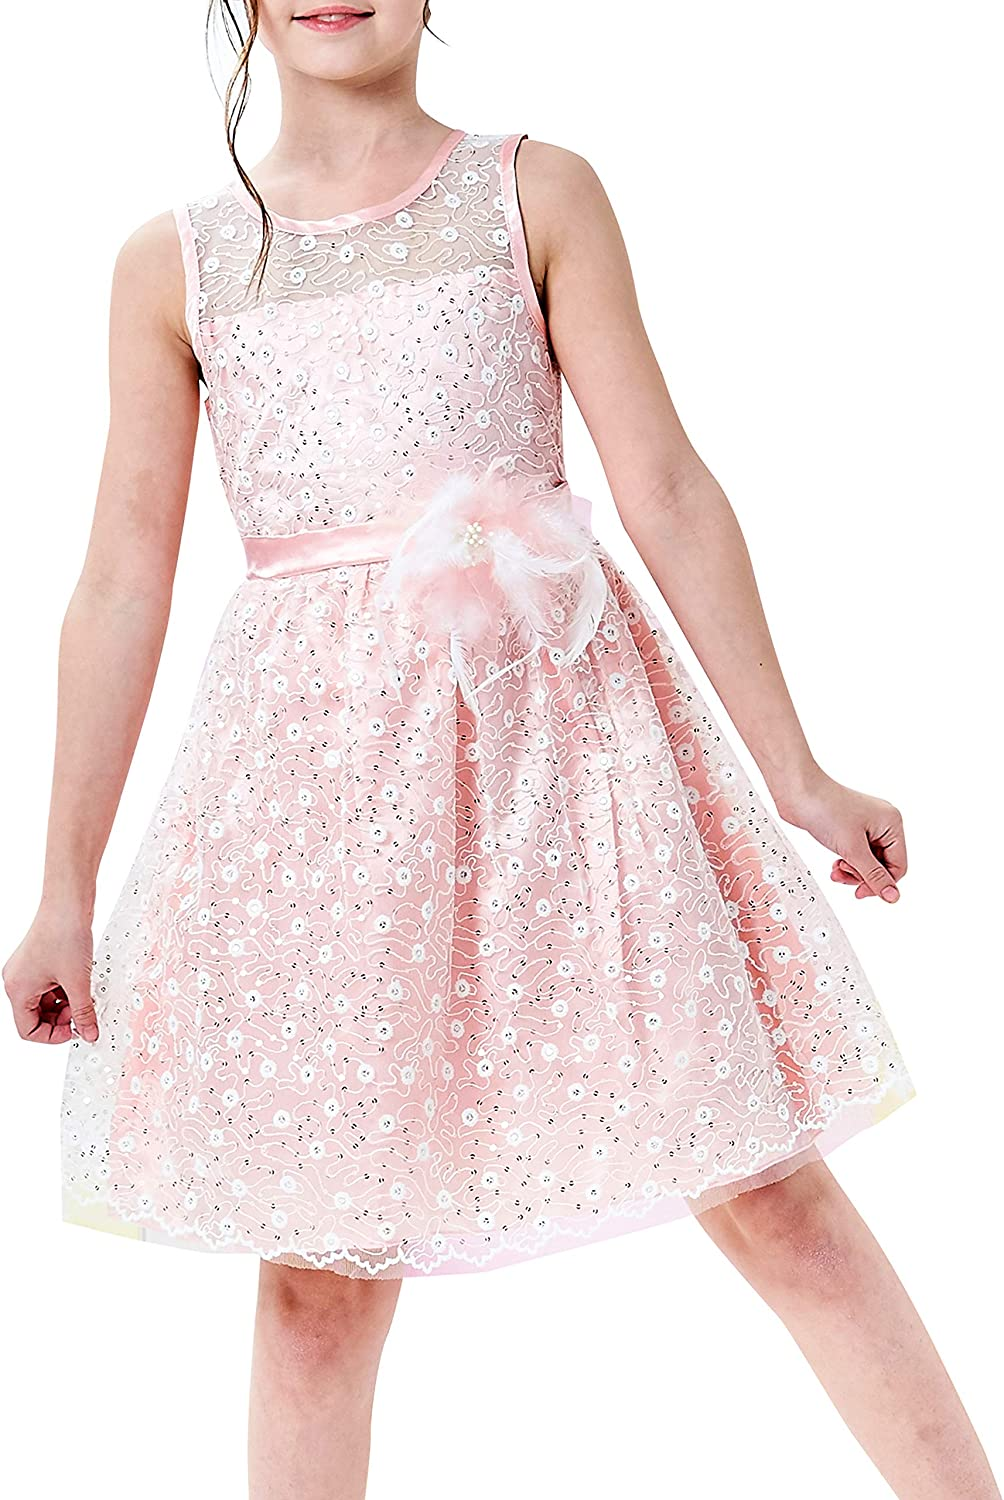 Sunny Fashion Flower Girl Dress Lace Sequin Flare Pink Wedding Party Size 5-12